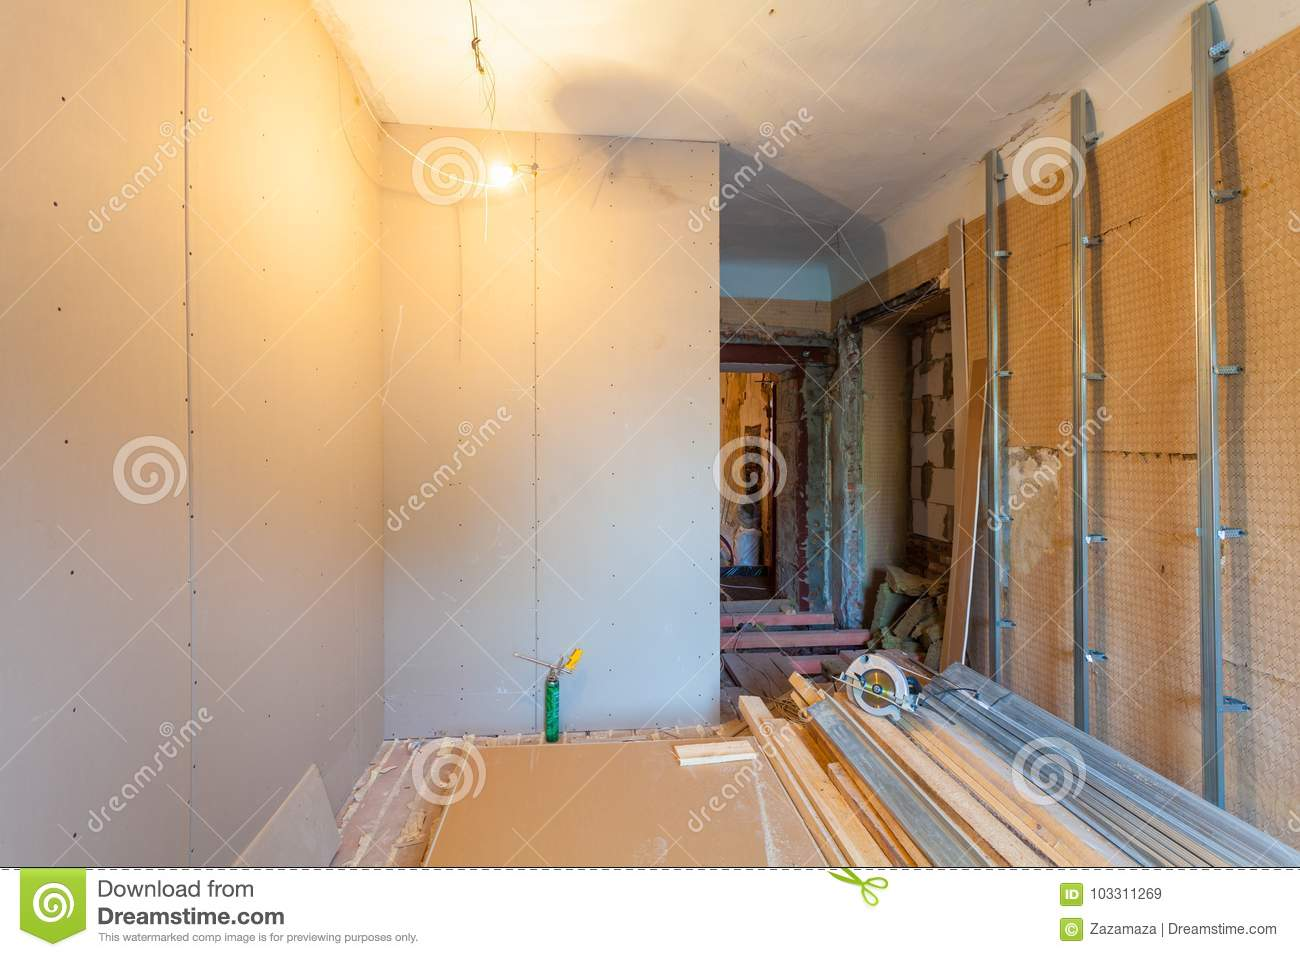 Interior of upgrade apartment with materials during on the remodeling, renovation, extension, restoration